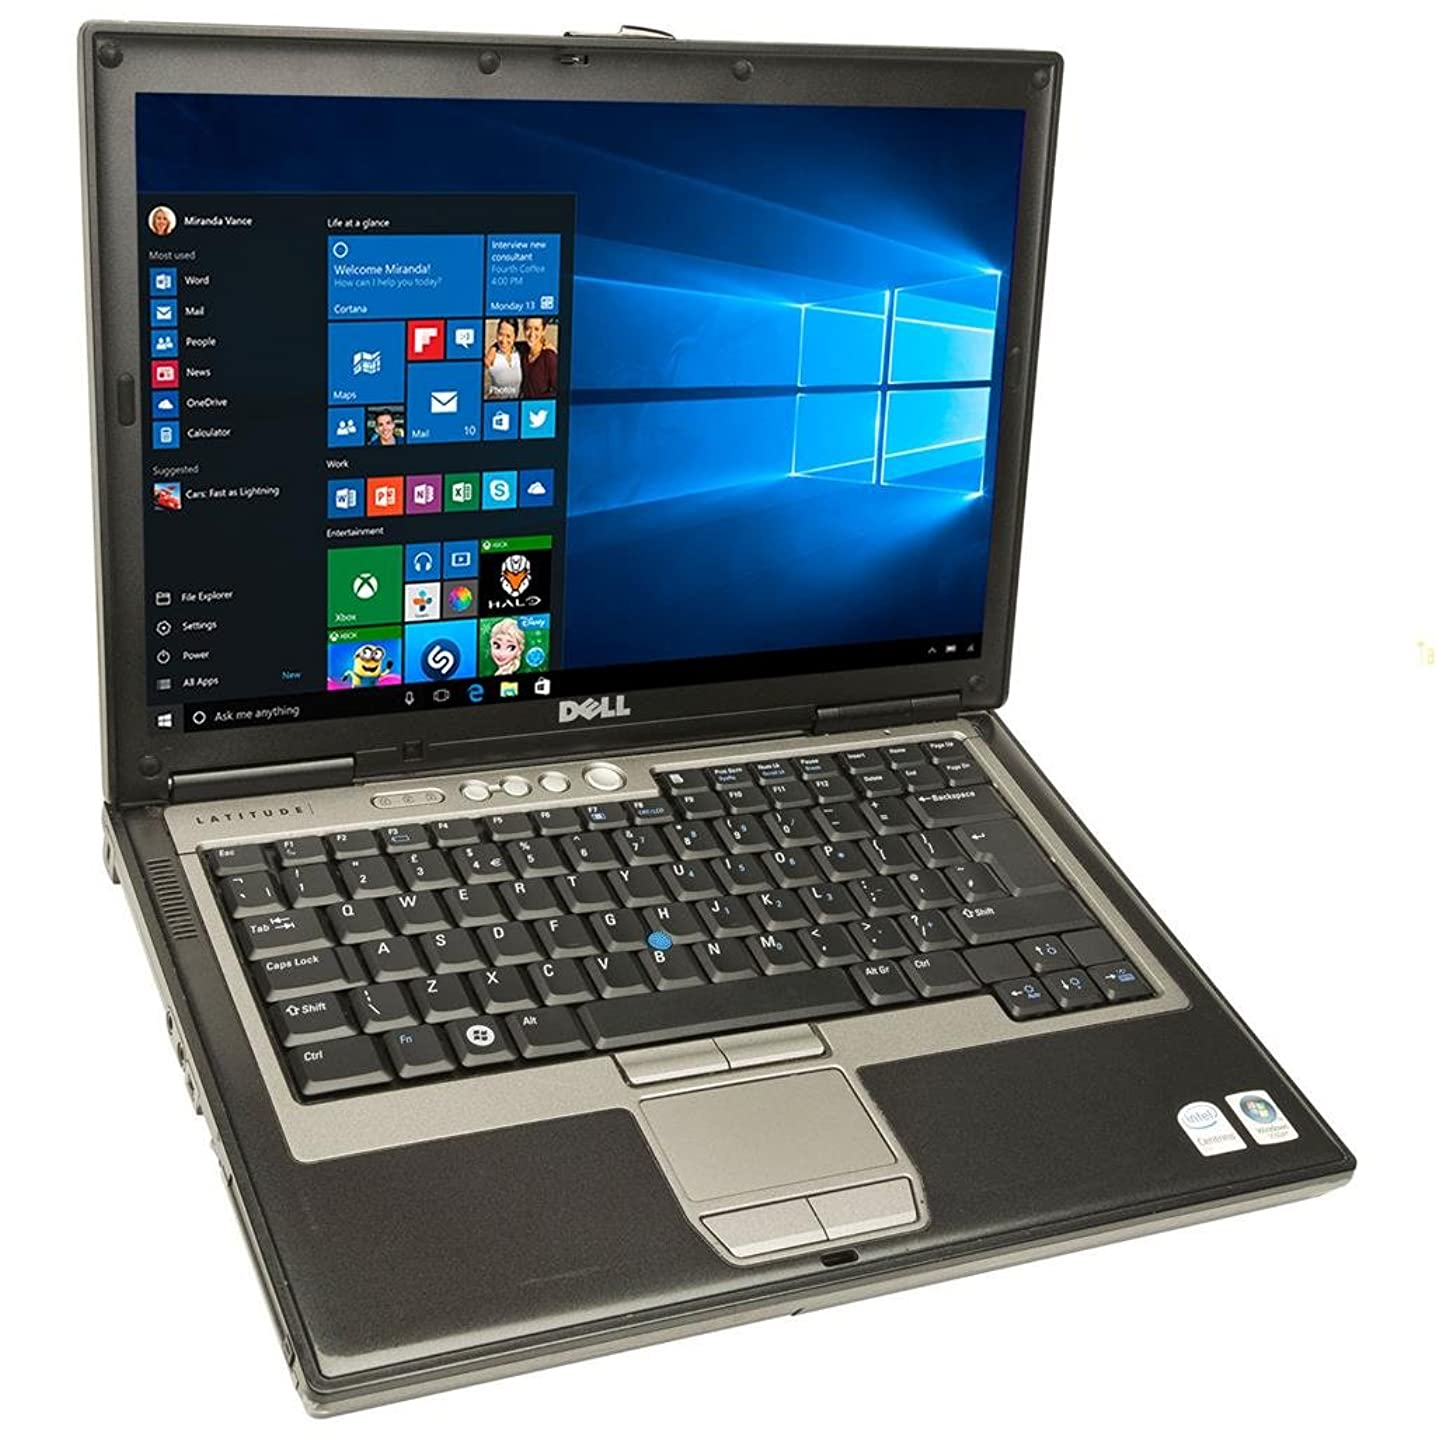 Dell Latitude D620 Laptop Notebook - Core Duo 1.60GHz - 2GB DDR2 - 80GB - DVD+CDRW - Windows 10 Home 32bit - (Renewed)